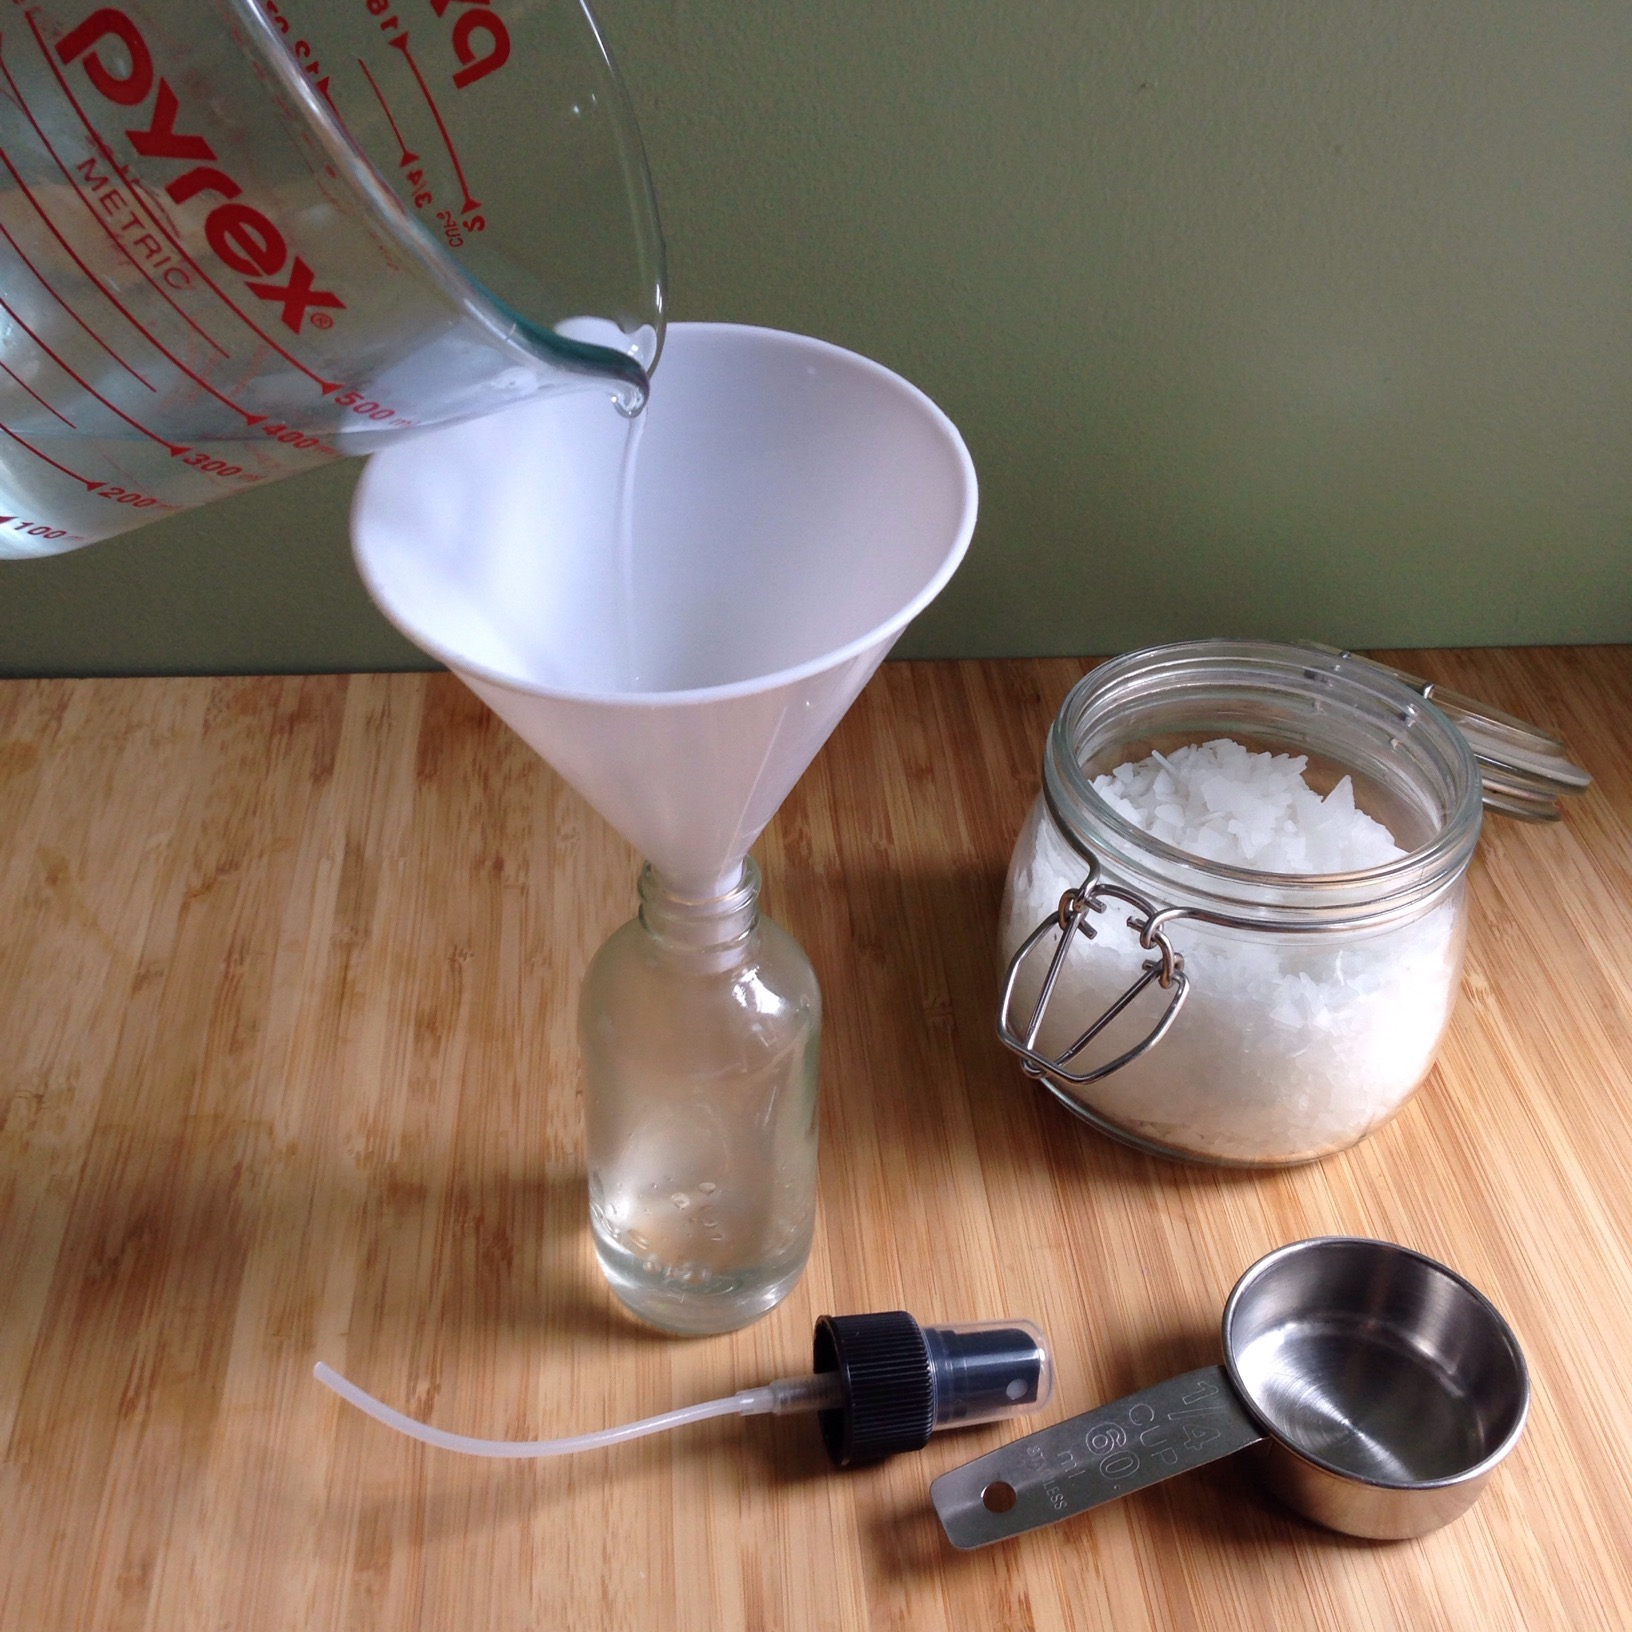 Add to a glass spray bottle with remaining ingredients